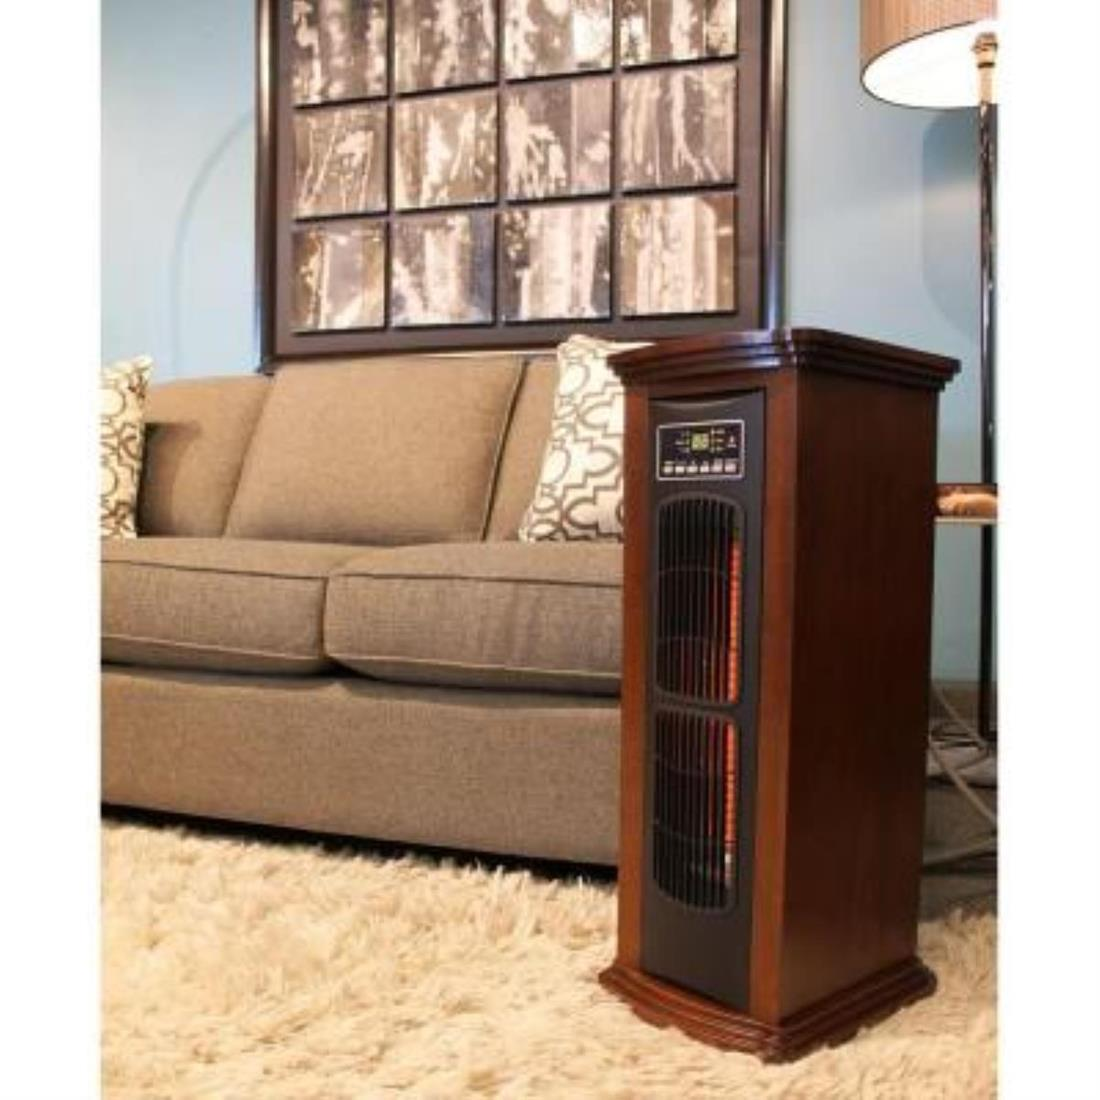 American Comfort 6-Element Infrared Tower Heater